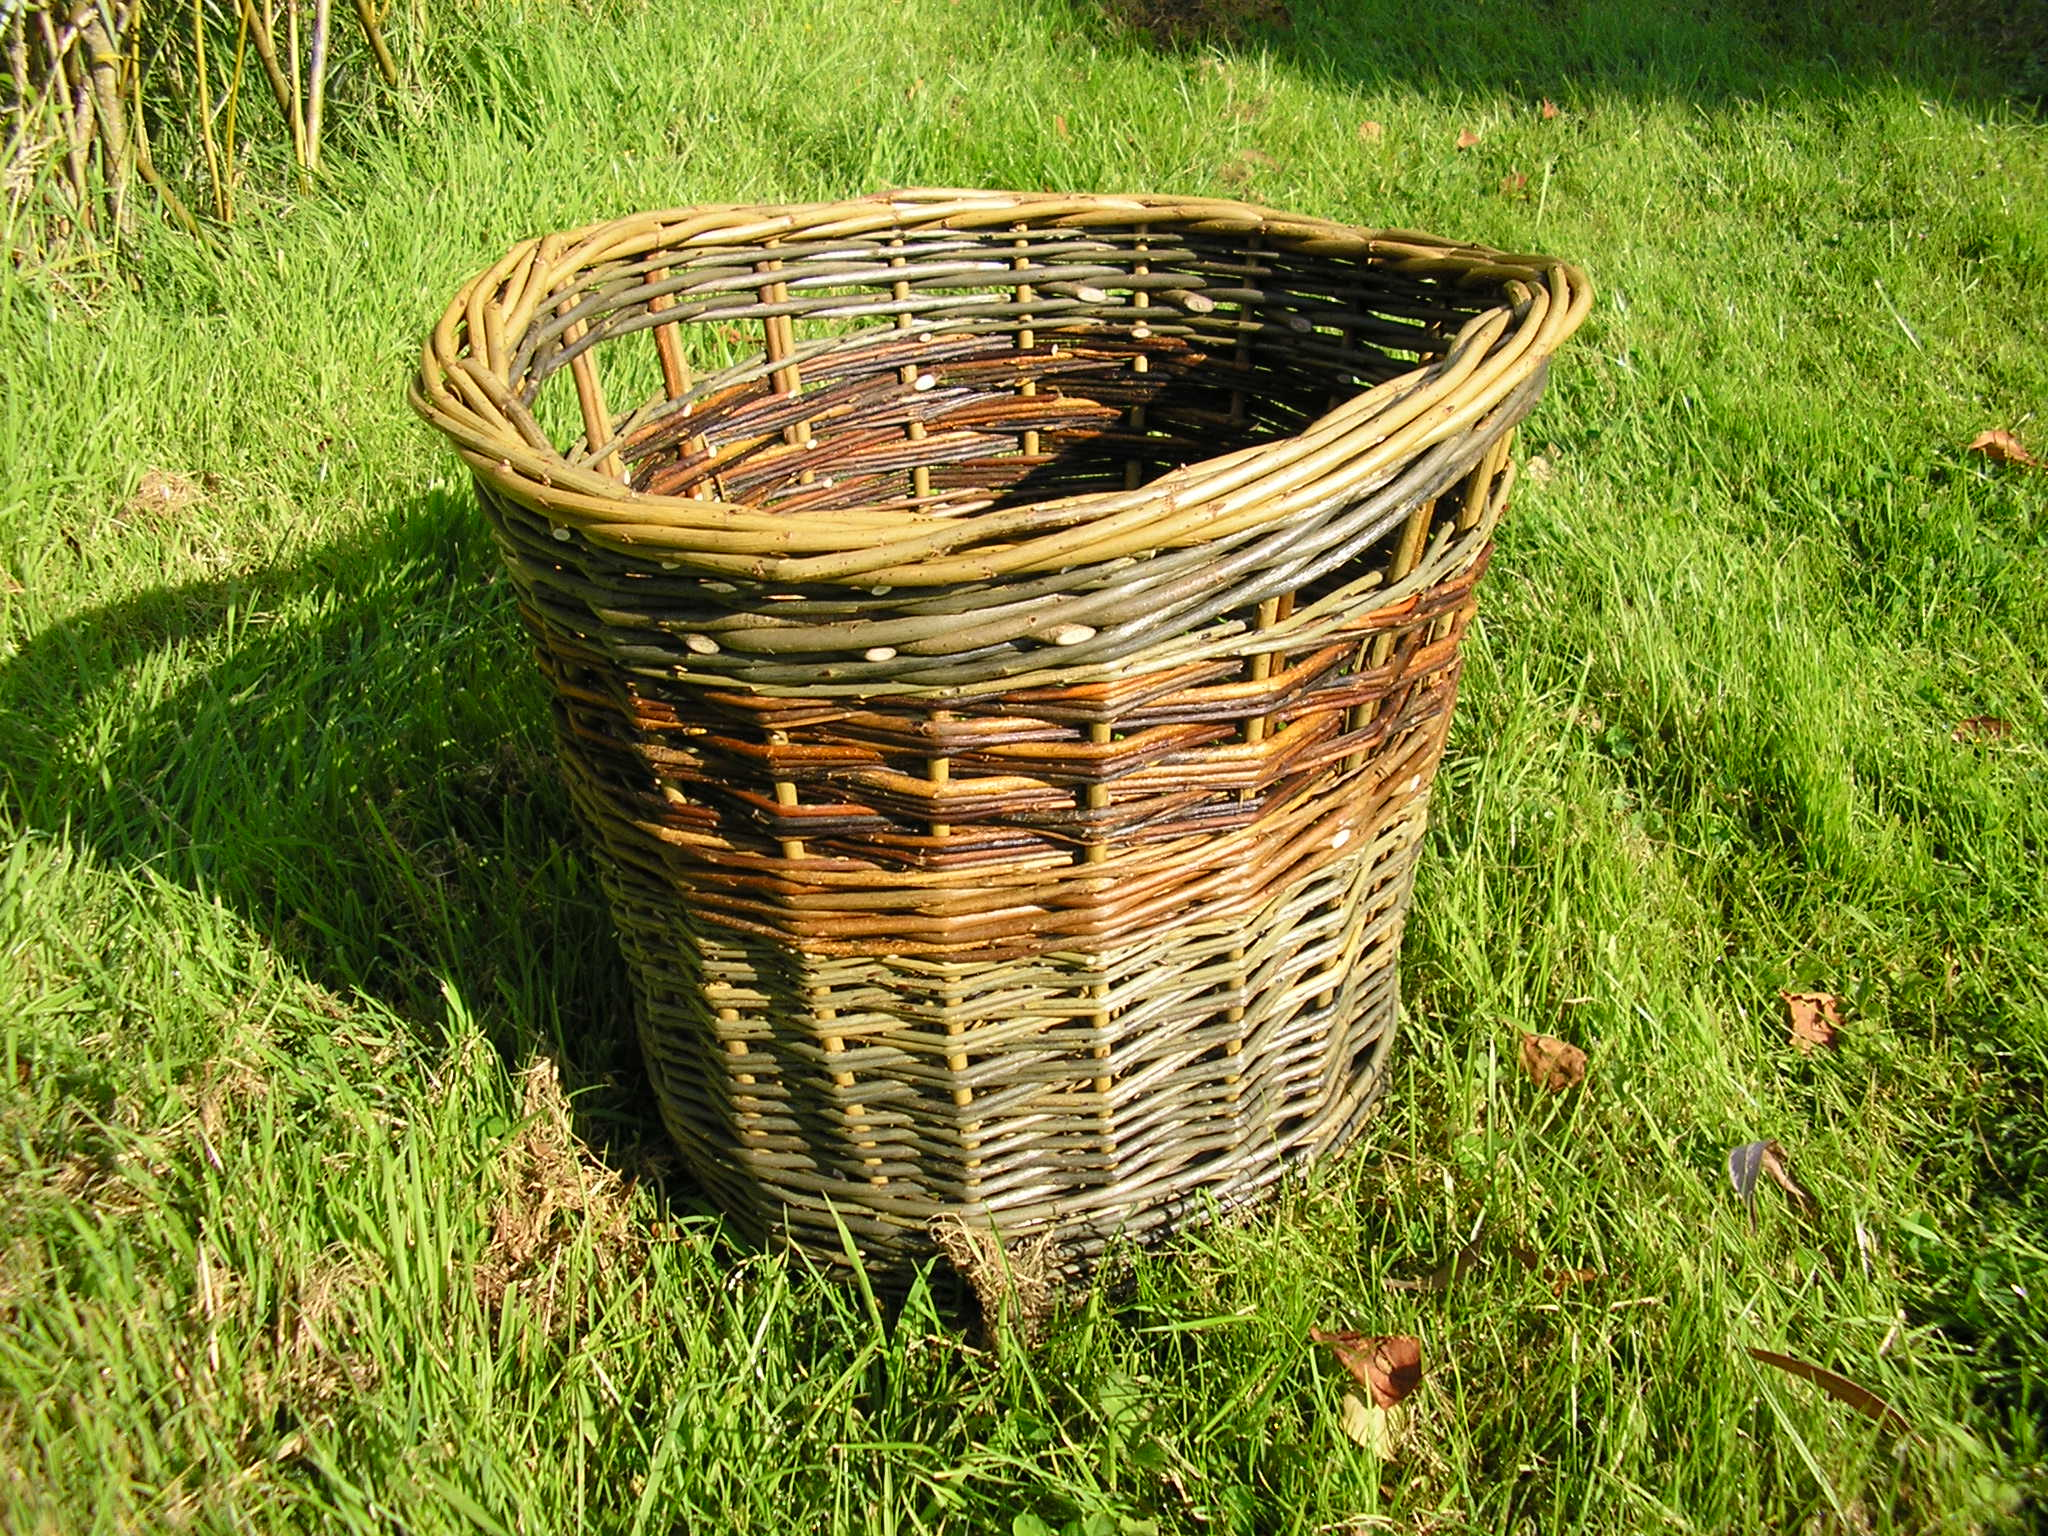 Make this sturdy log basket!